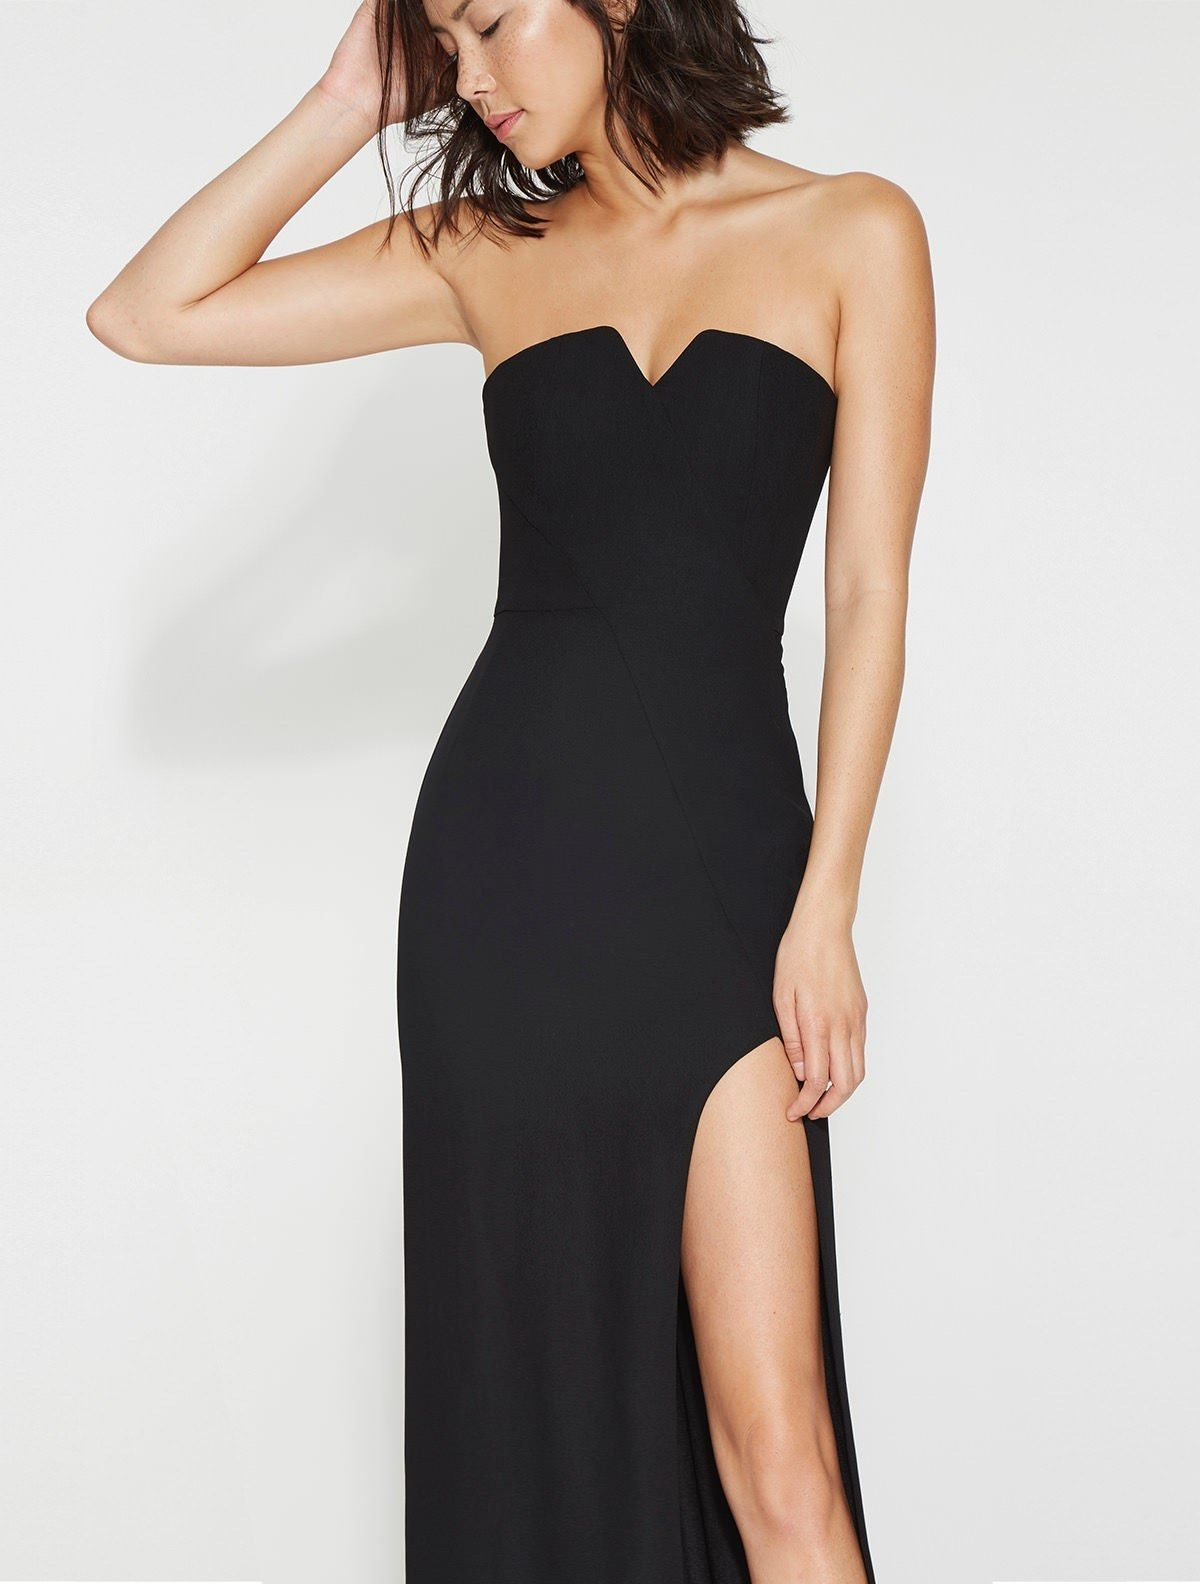 015efc9d49f87 Strapless Crepe Gown With Slit - Halston Heritage | Fierce Fashion ...